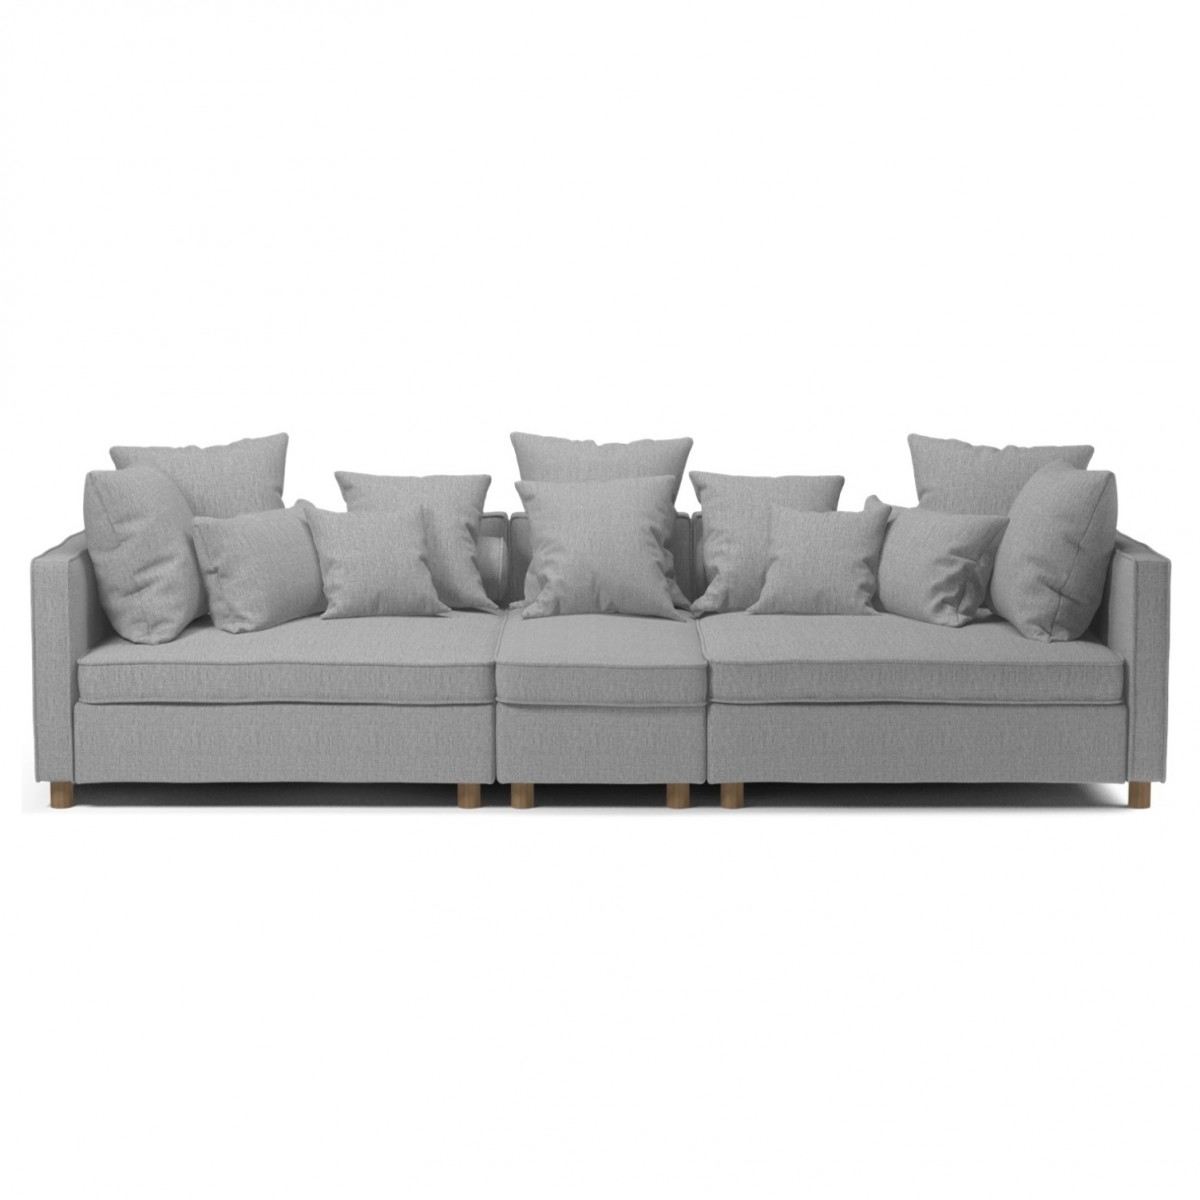 Big Sofa Vincent Mr Big Sofa 3 Units S Bolia